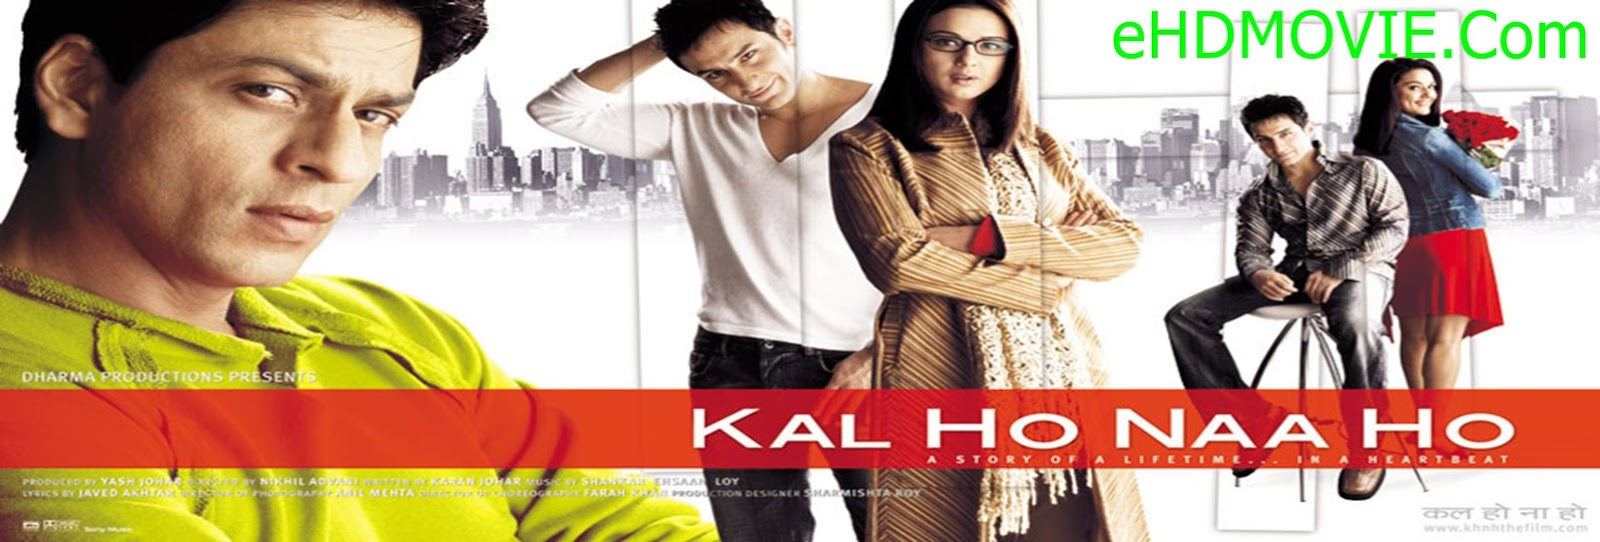 Kal Ho Naa Ho 2003 Full Movie Hindi 720p - HEVC ORG BRRip 700MB - 1.4GB ESubs Free Download